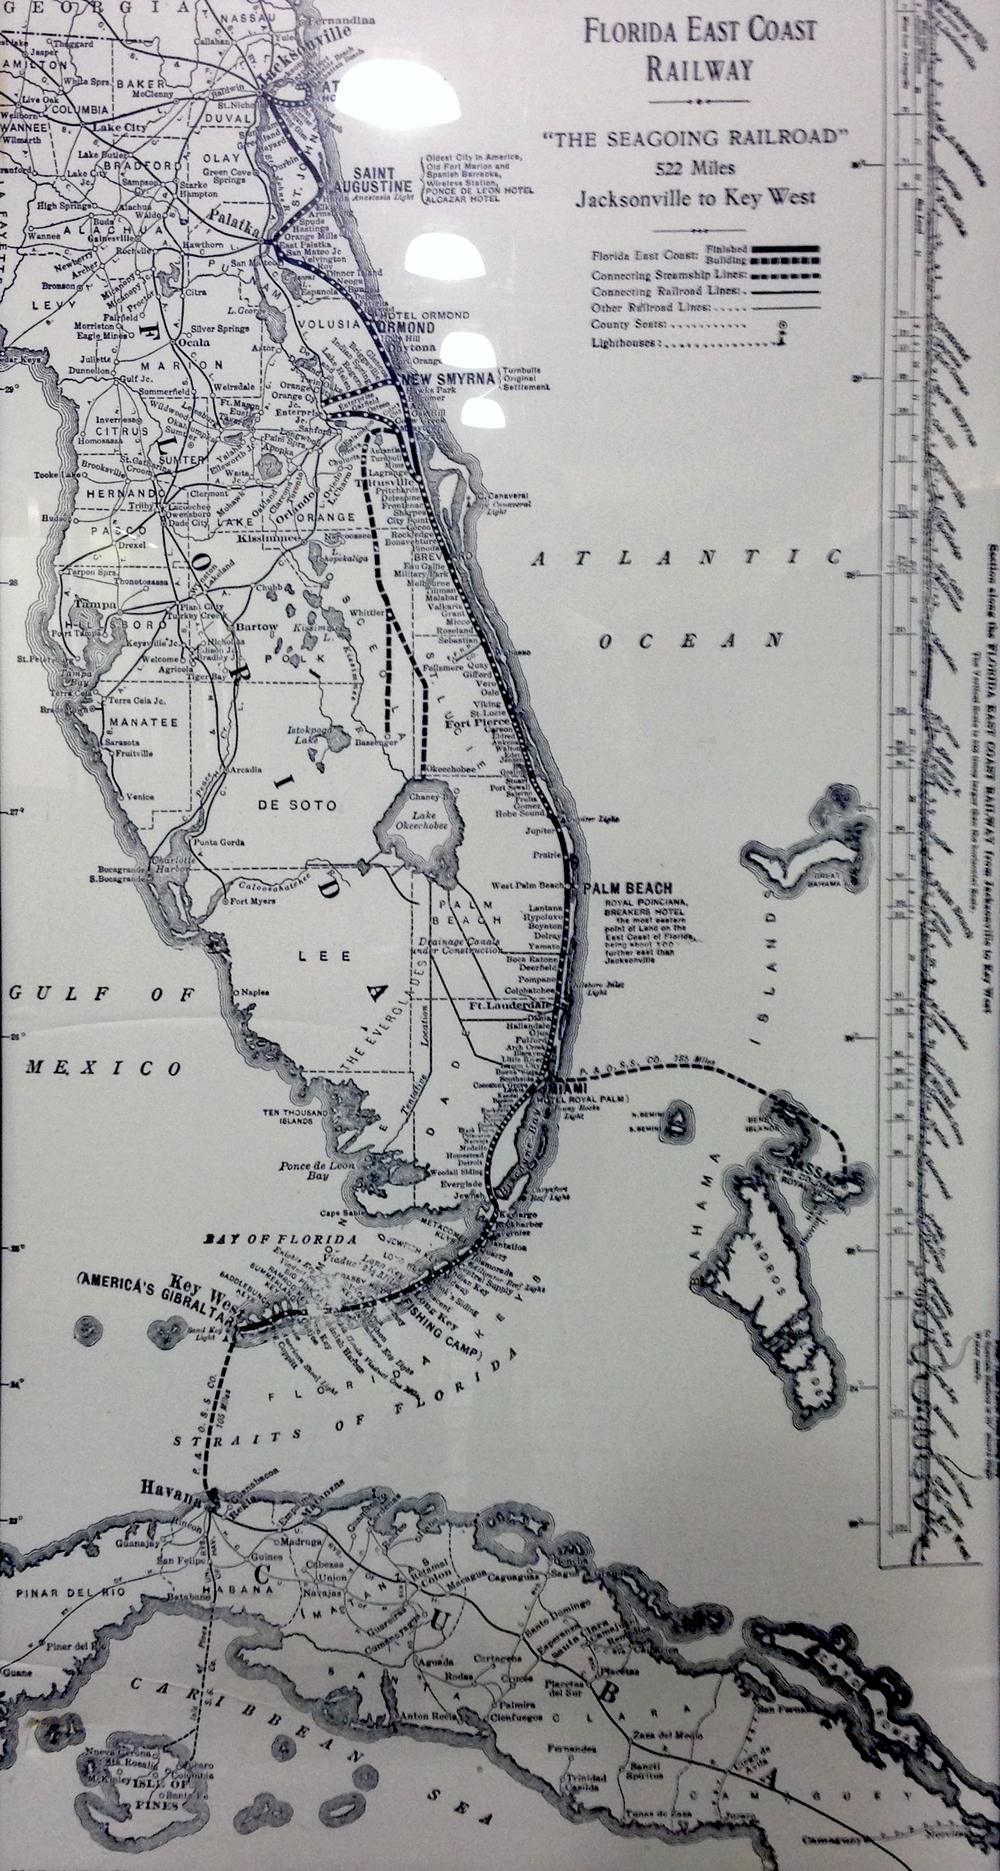 Map of the entire proposed railway. Hanging at the South Florida Fairgrounds.